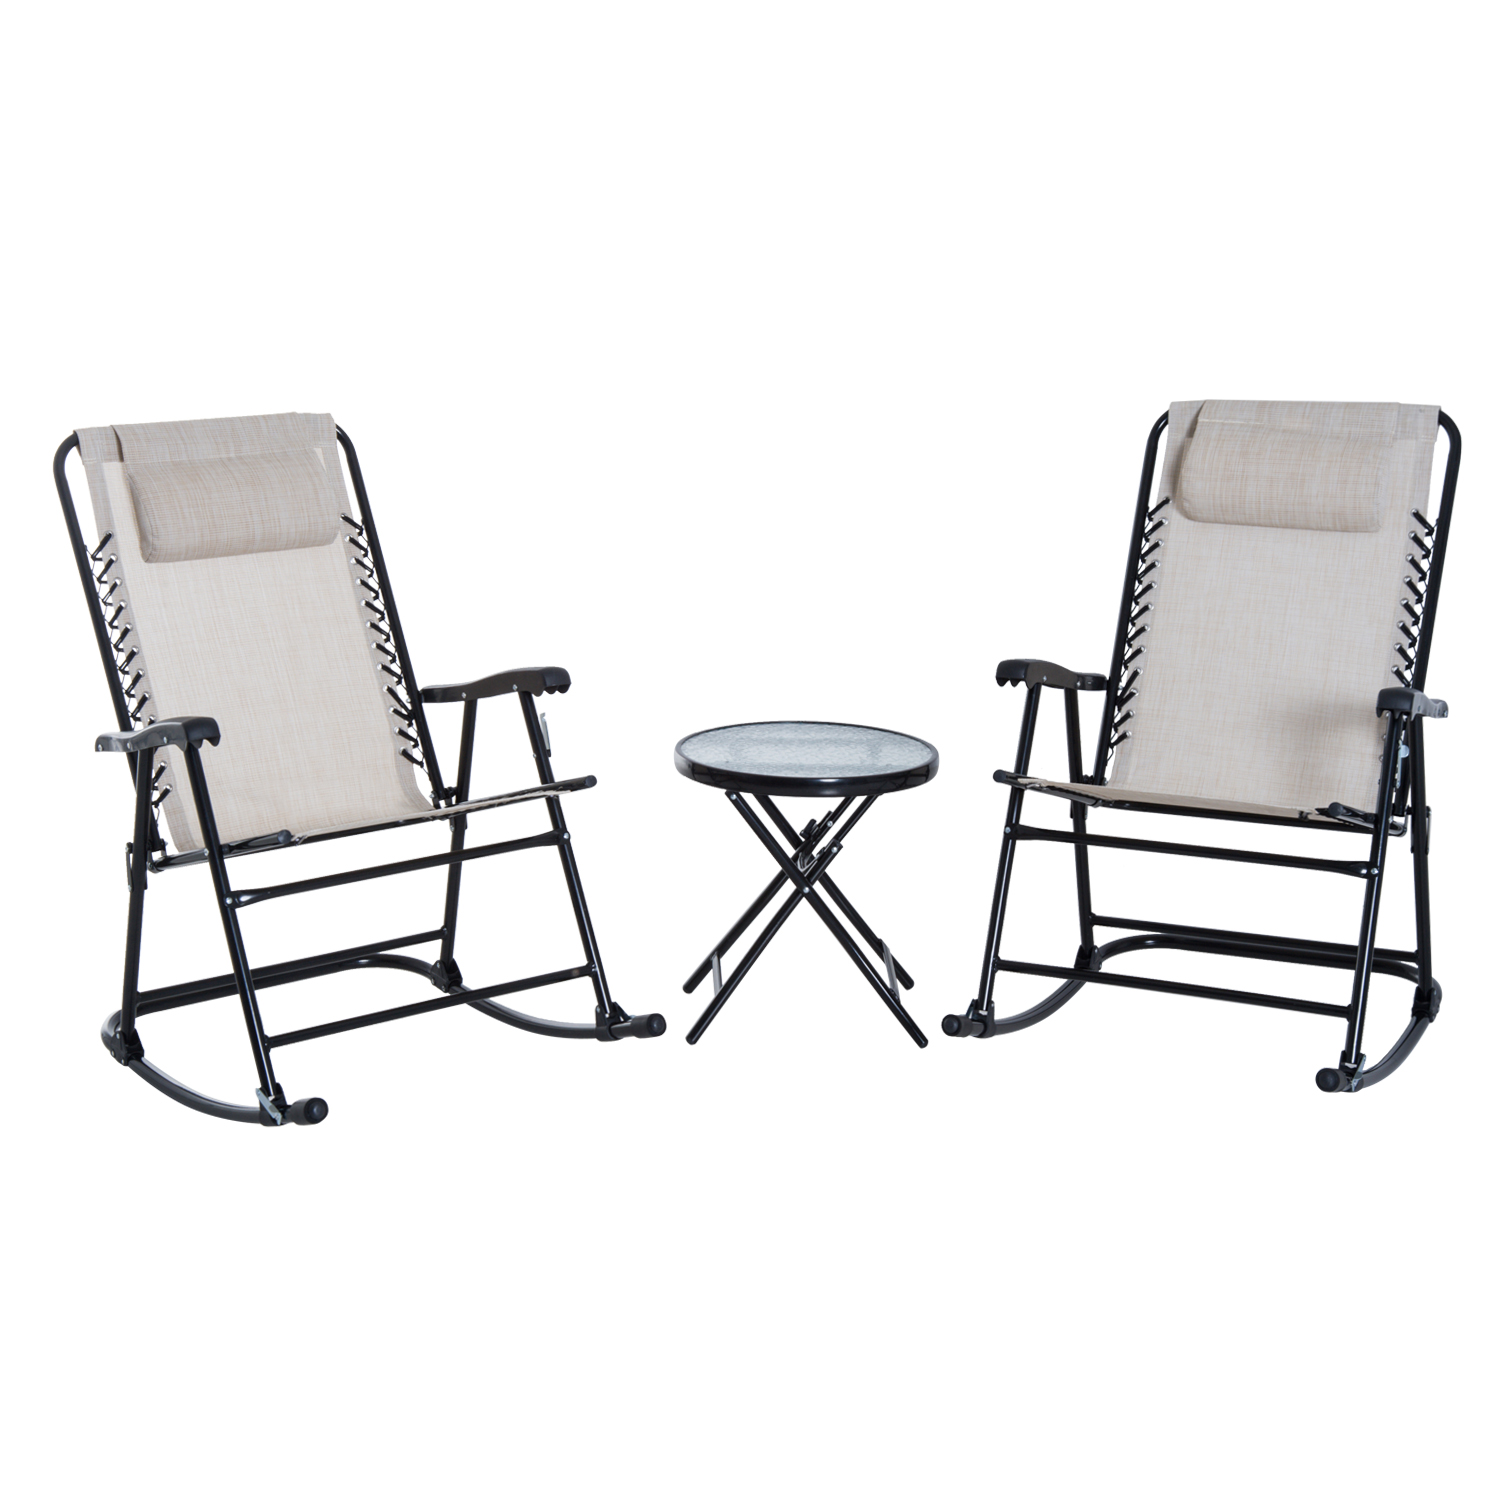 Outsunny 3 Piece Outdoor Folding Rocking Chair Set With